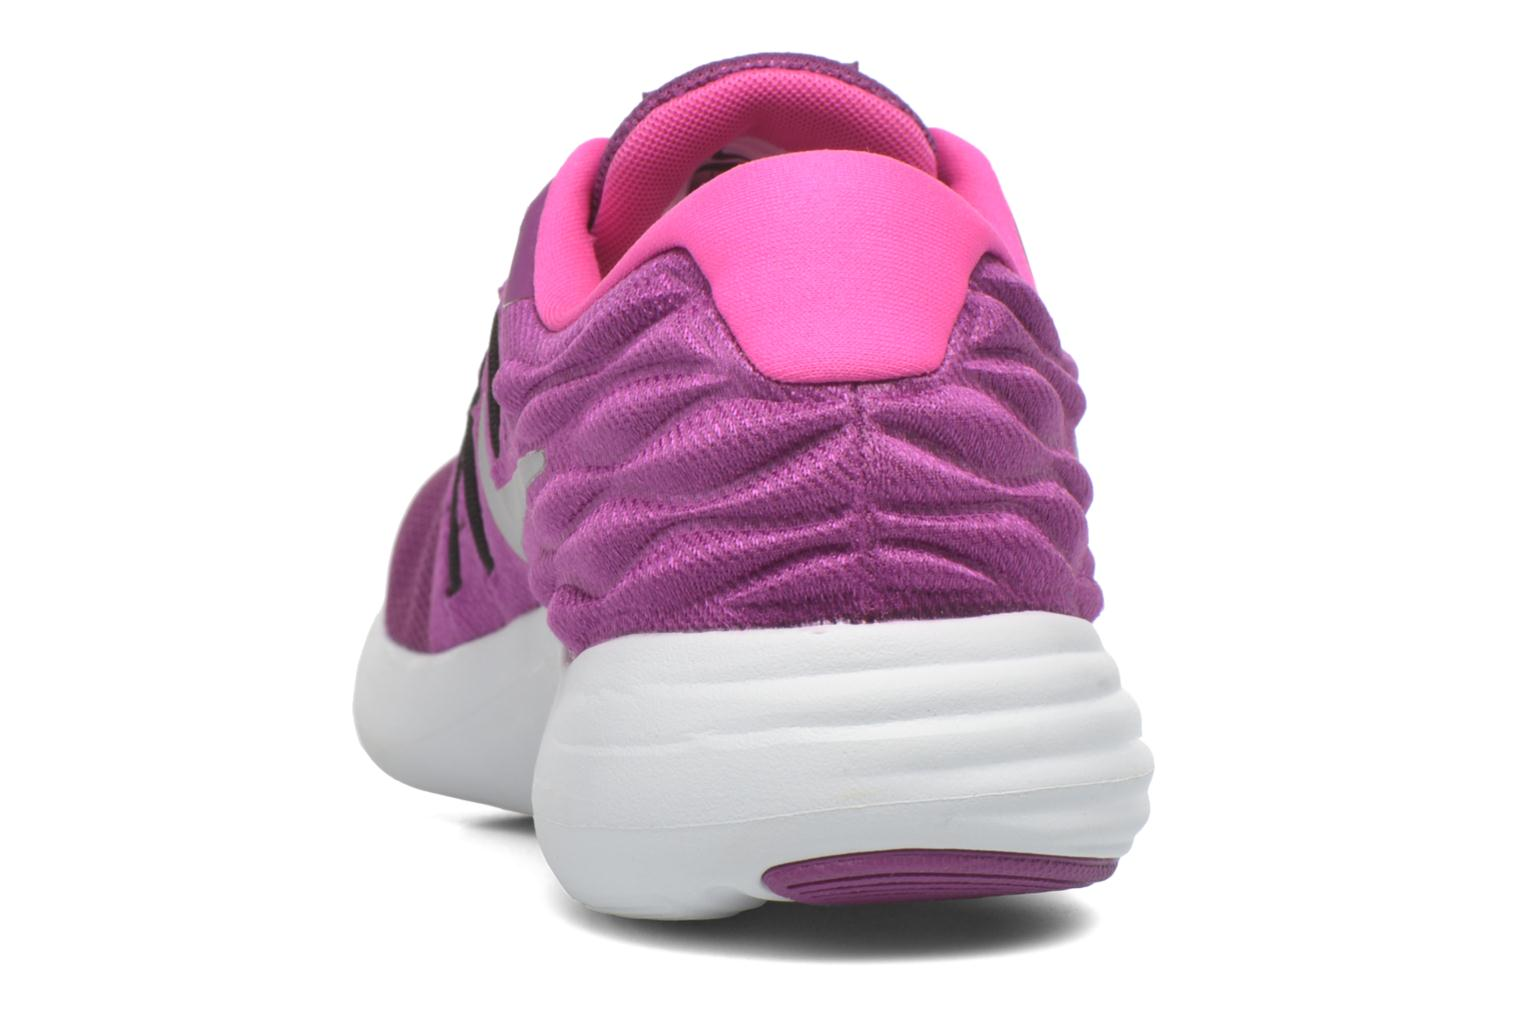 Silver fire Lunarstelos Grape Wmns Nike metallic Pink Bright 8NnOwk0XP